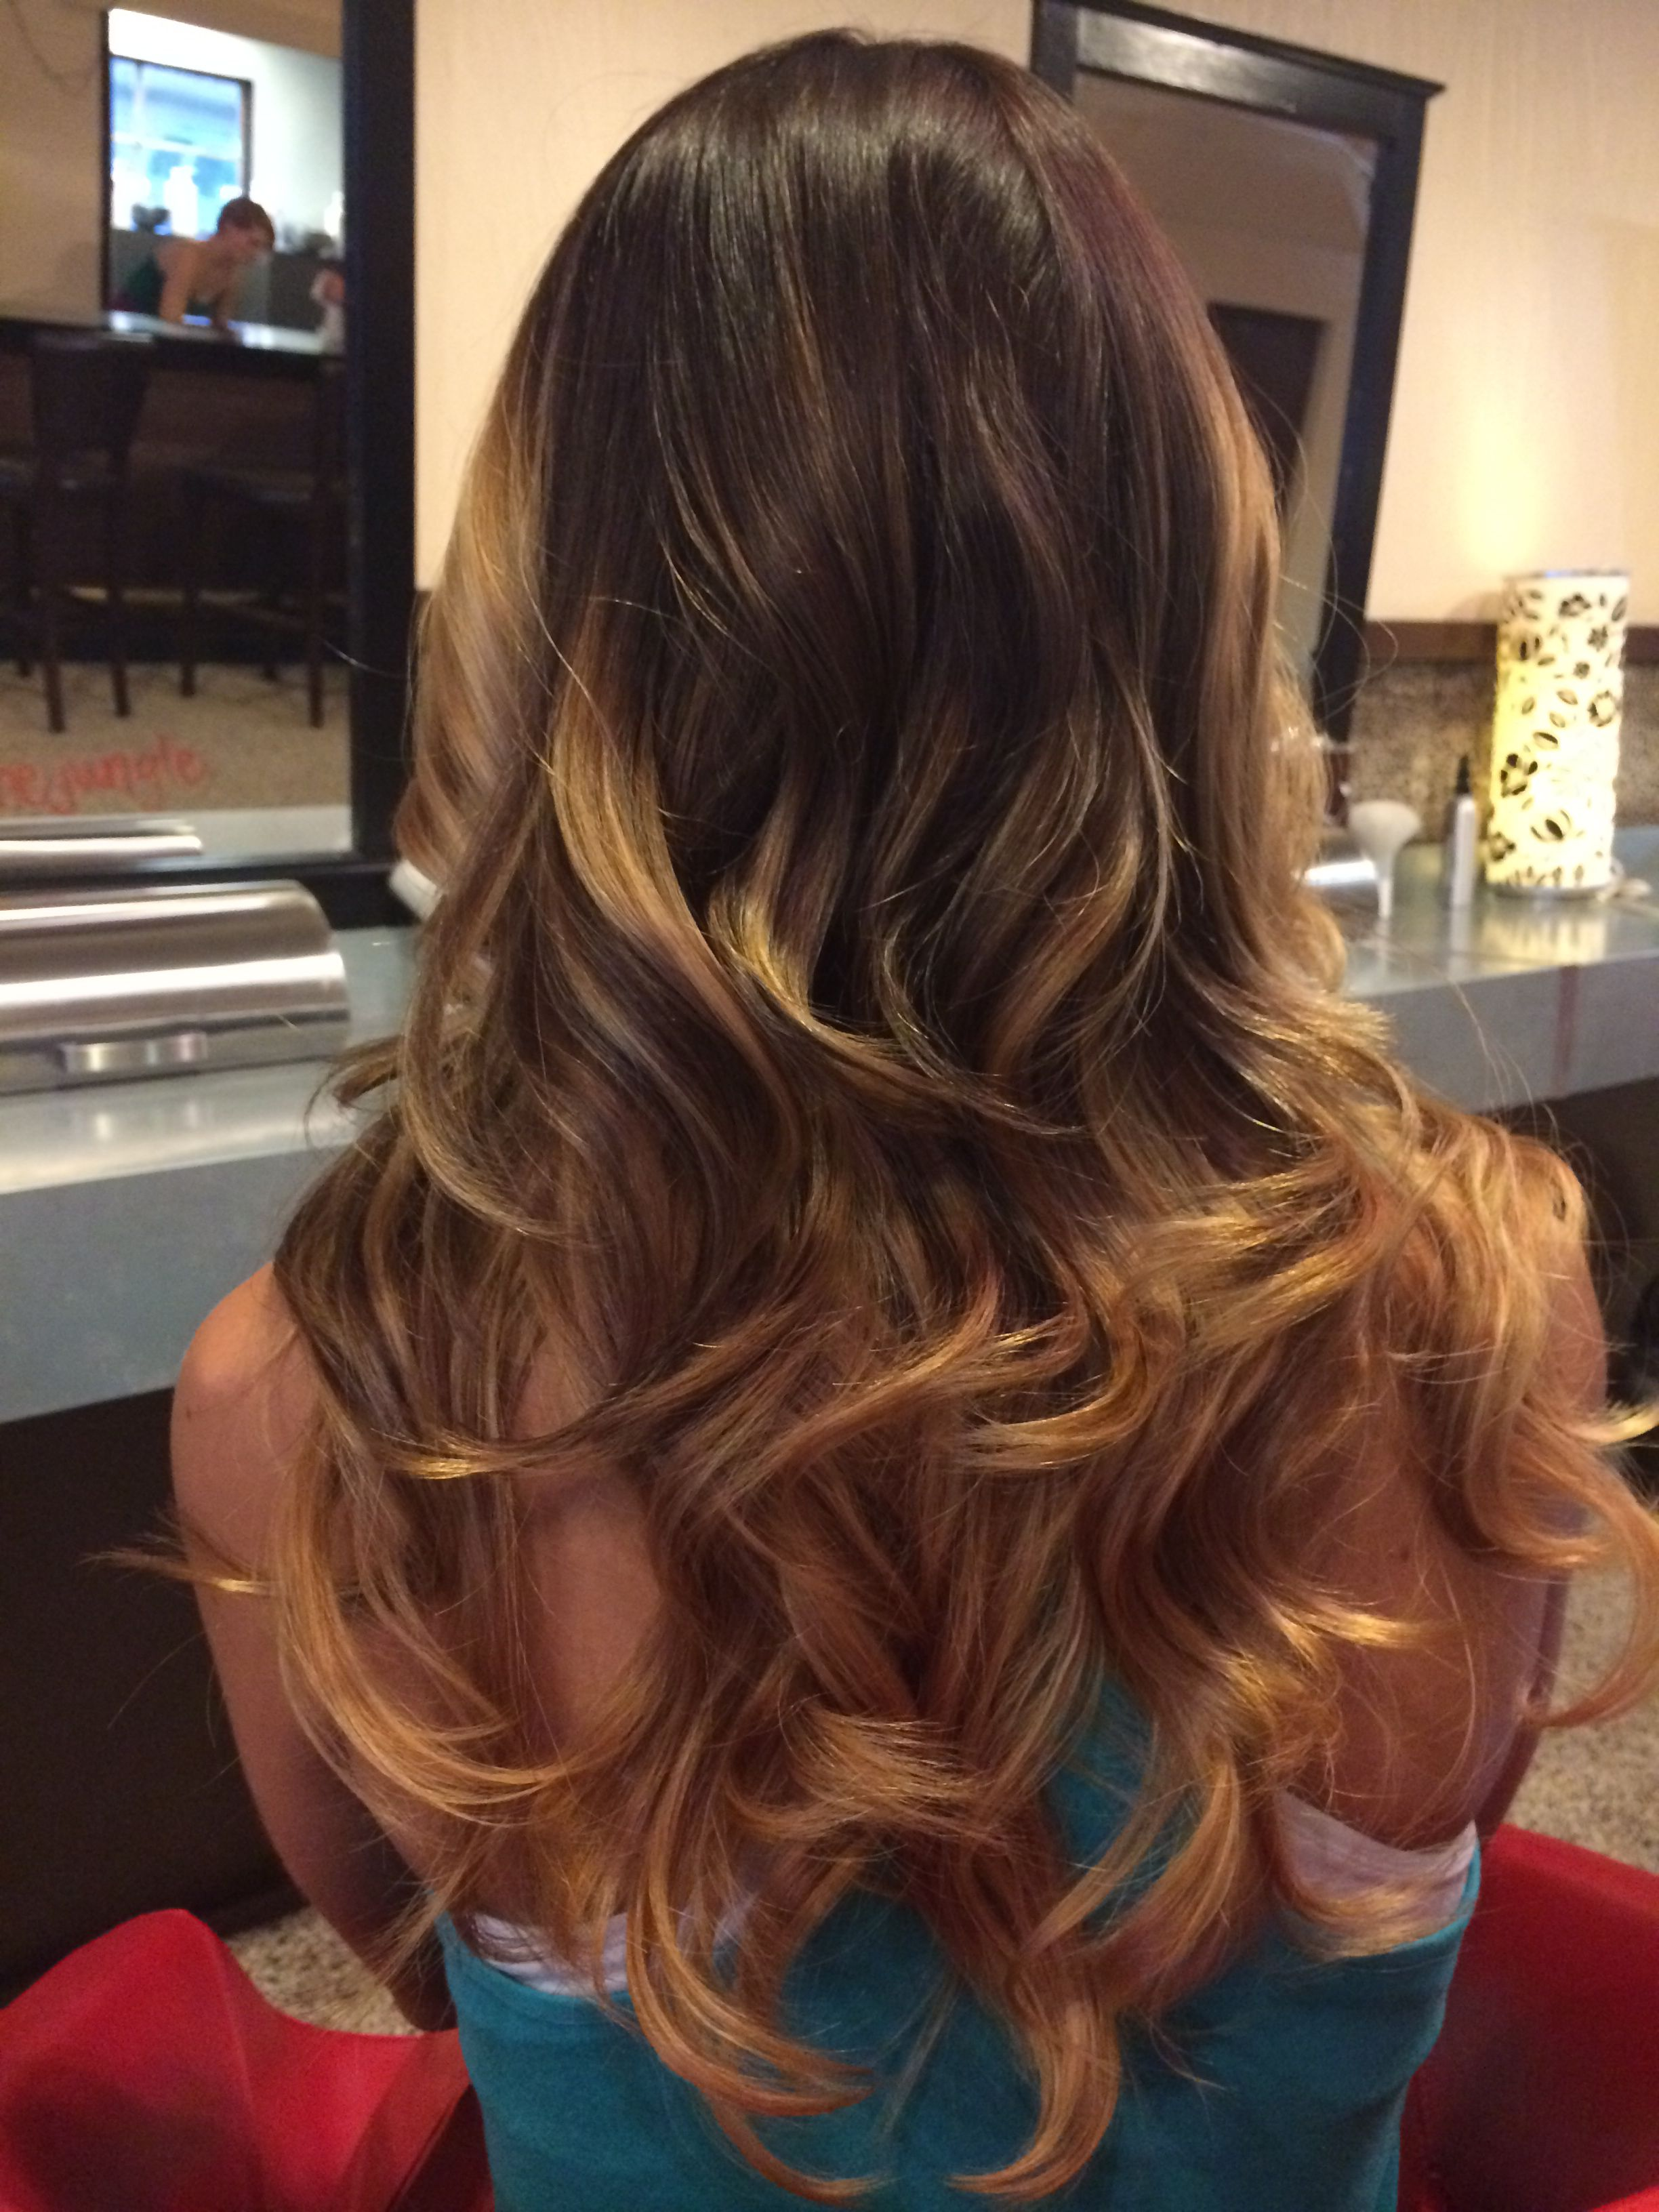 Ombre Hair Color Golden Blonde Highlights With A Light Brown Base